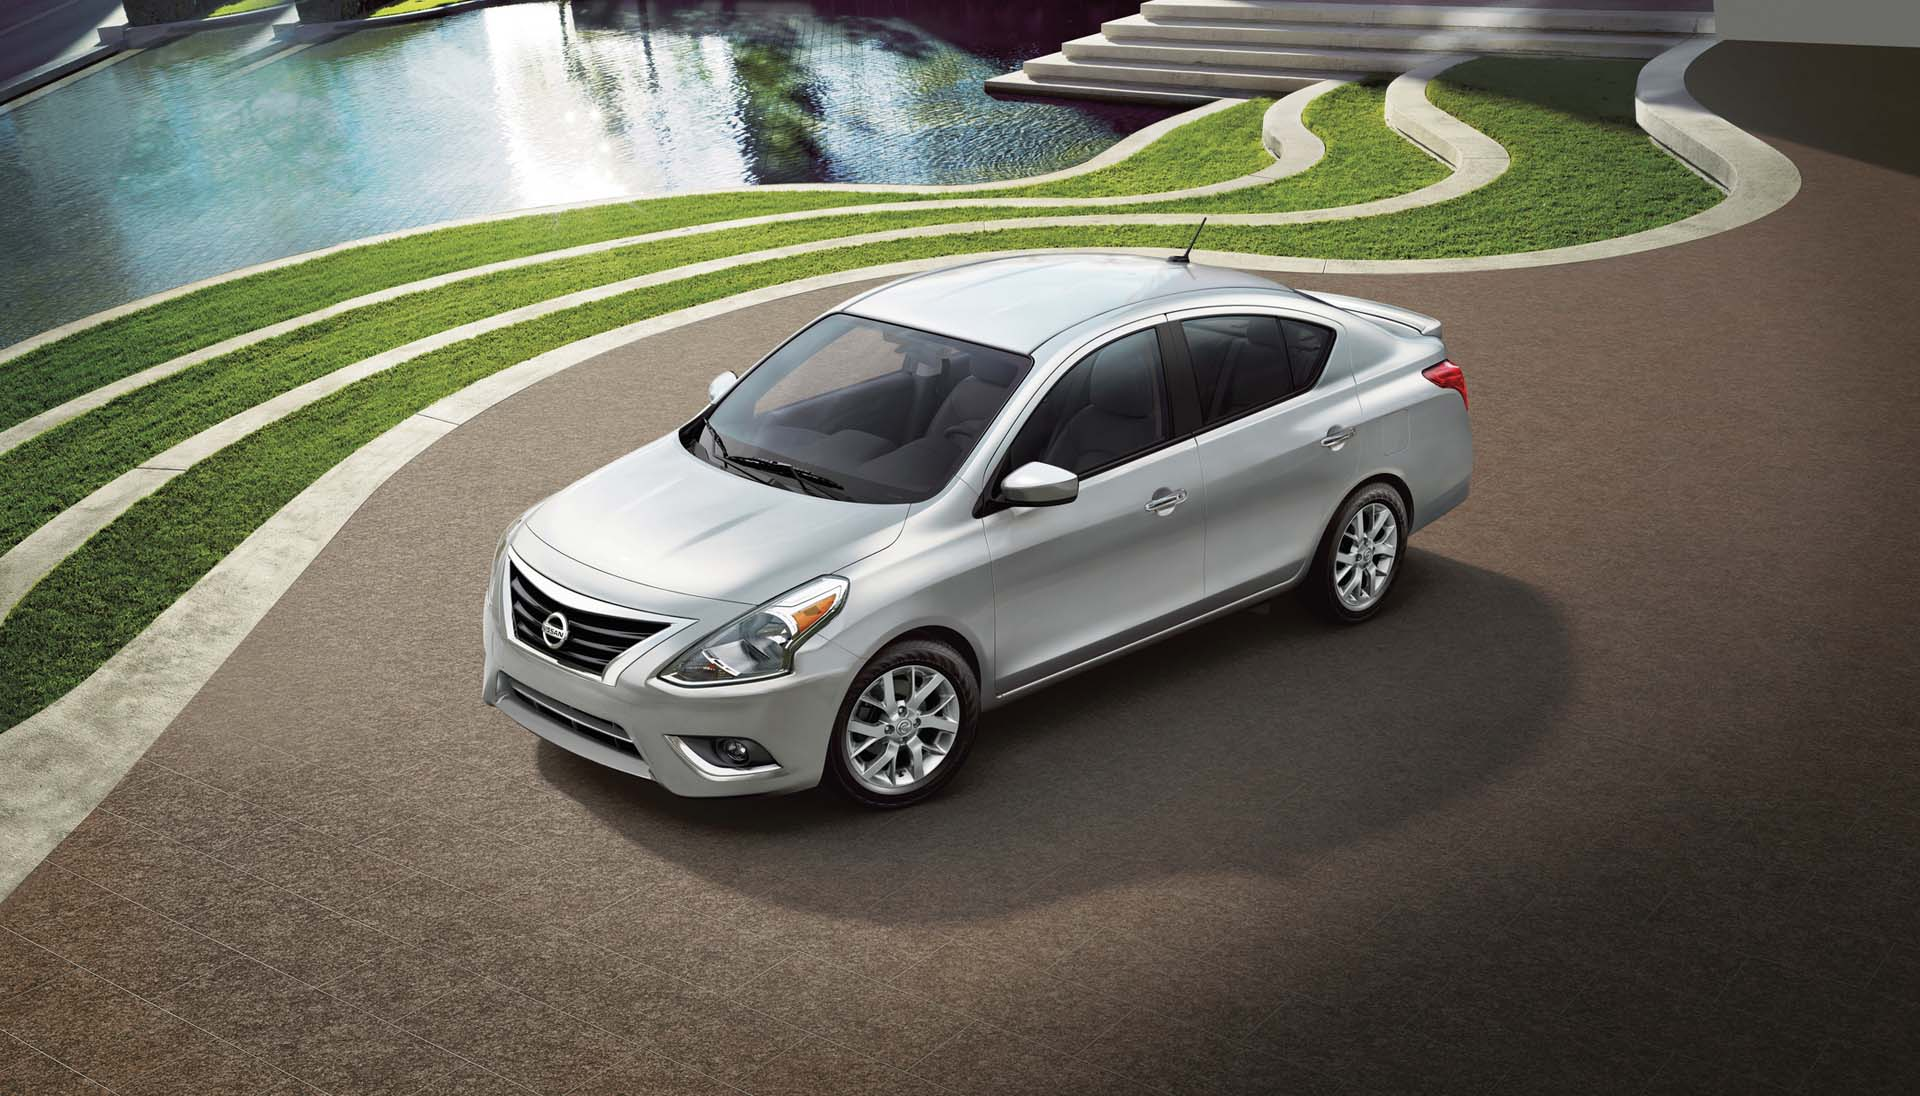 new and used nissan versa prices photos reviews specs the car connection. Black Bedroom Furniture Sets. Home Design Ideas